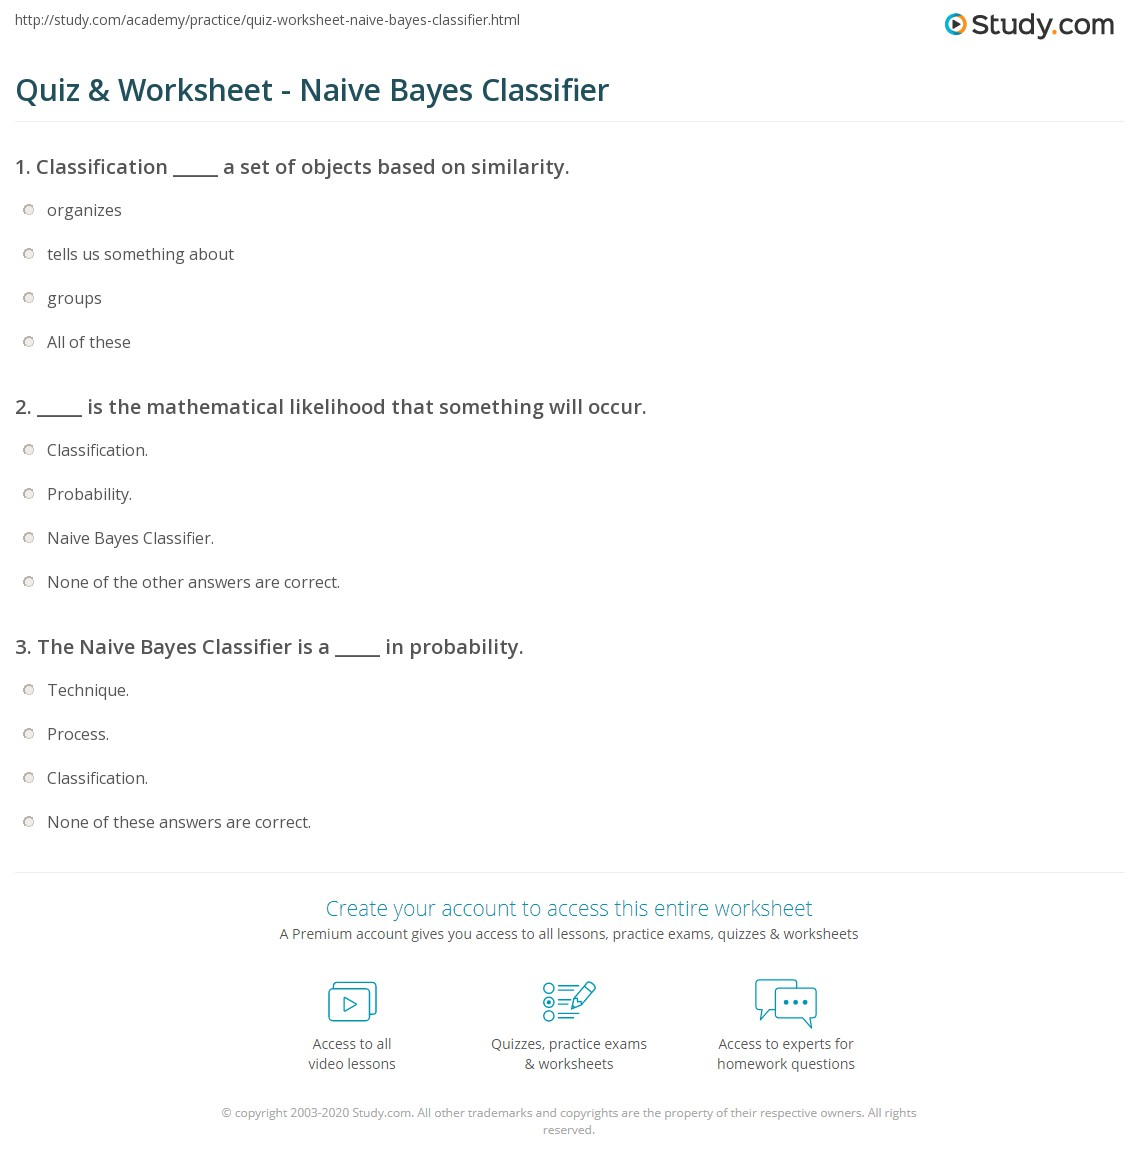 Quiz Worksheet Naive Bayes Classifier Study